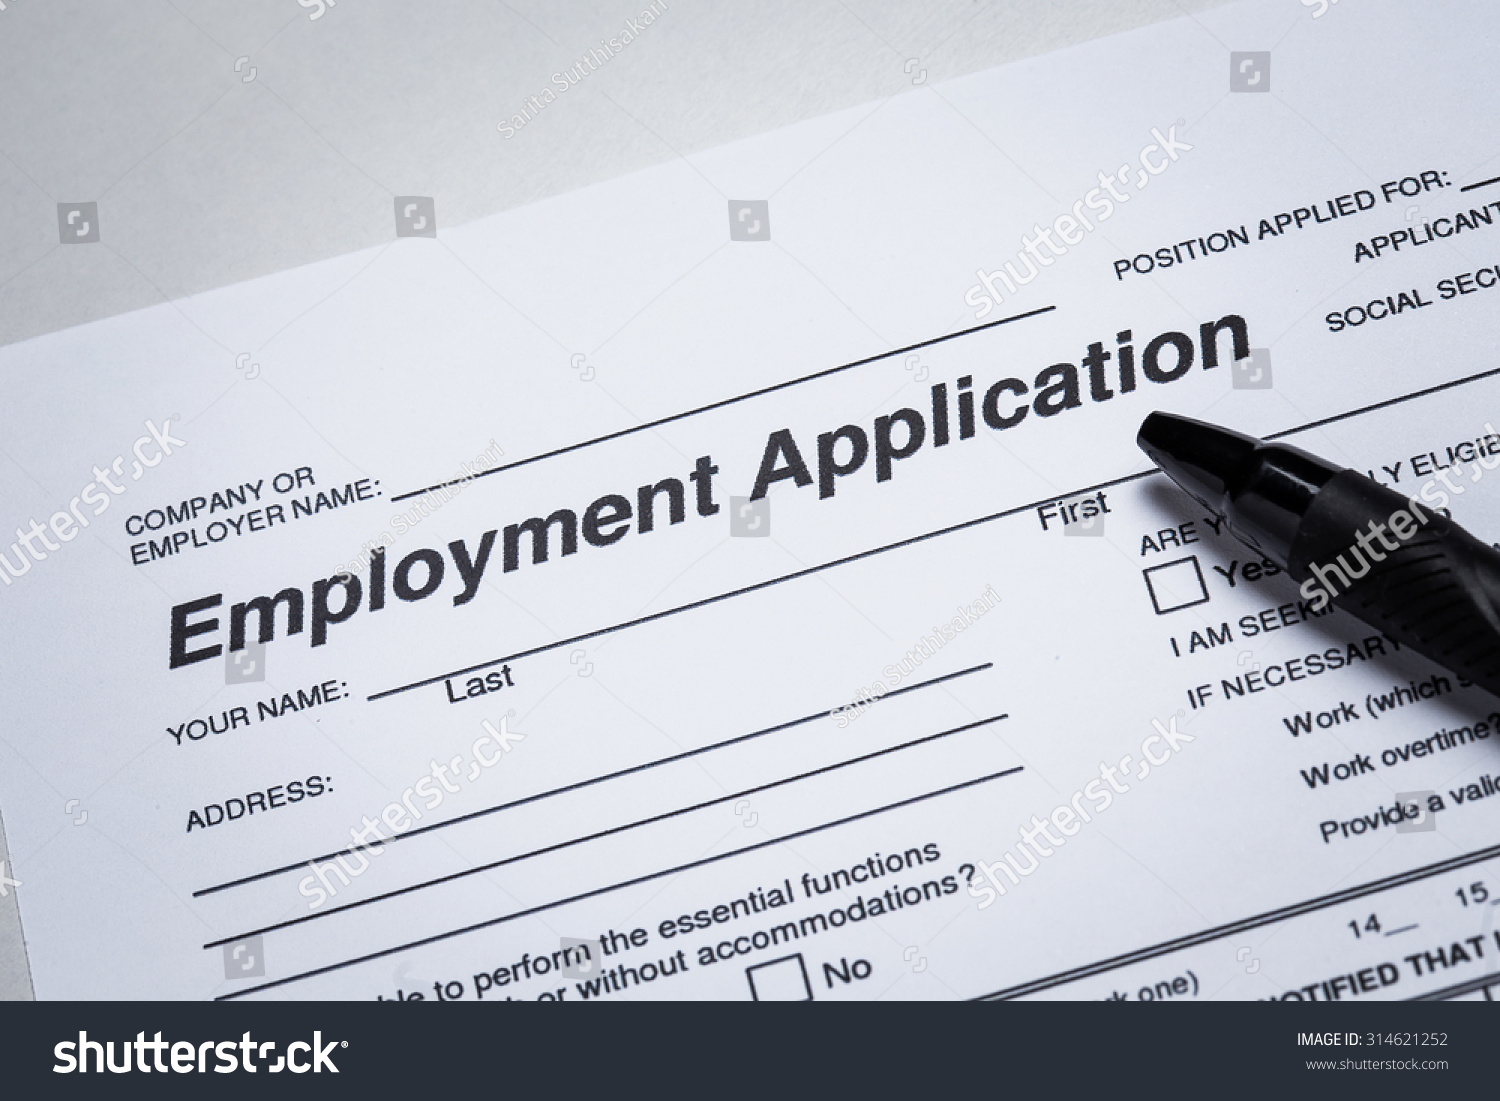 royalty completing an job application form  completing an job application form focus on heading 314621252